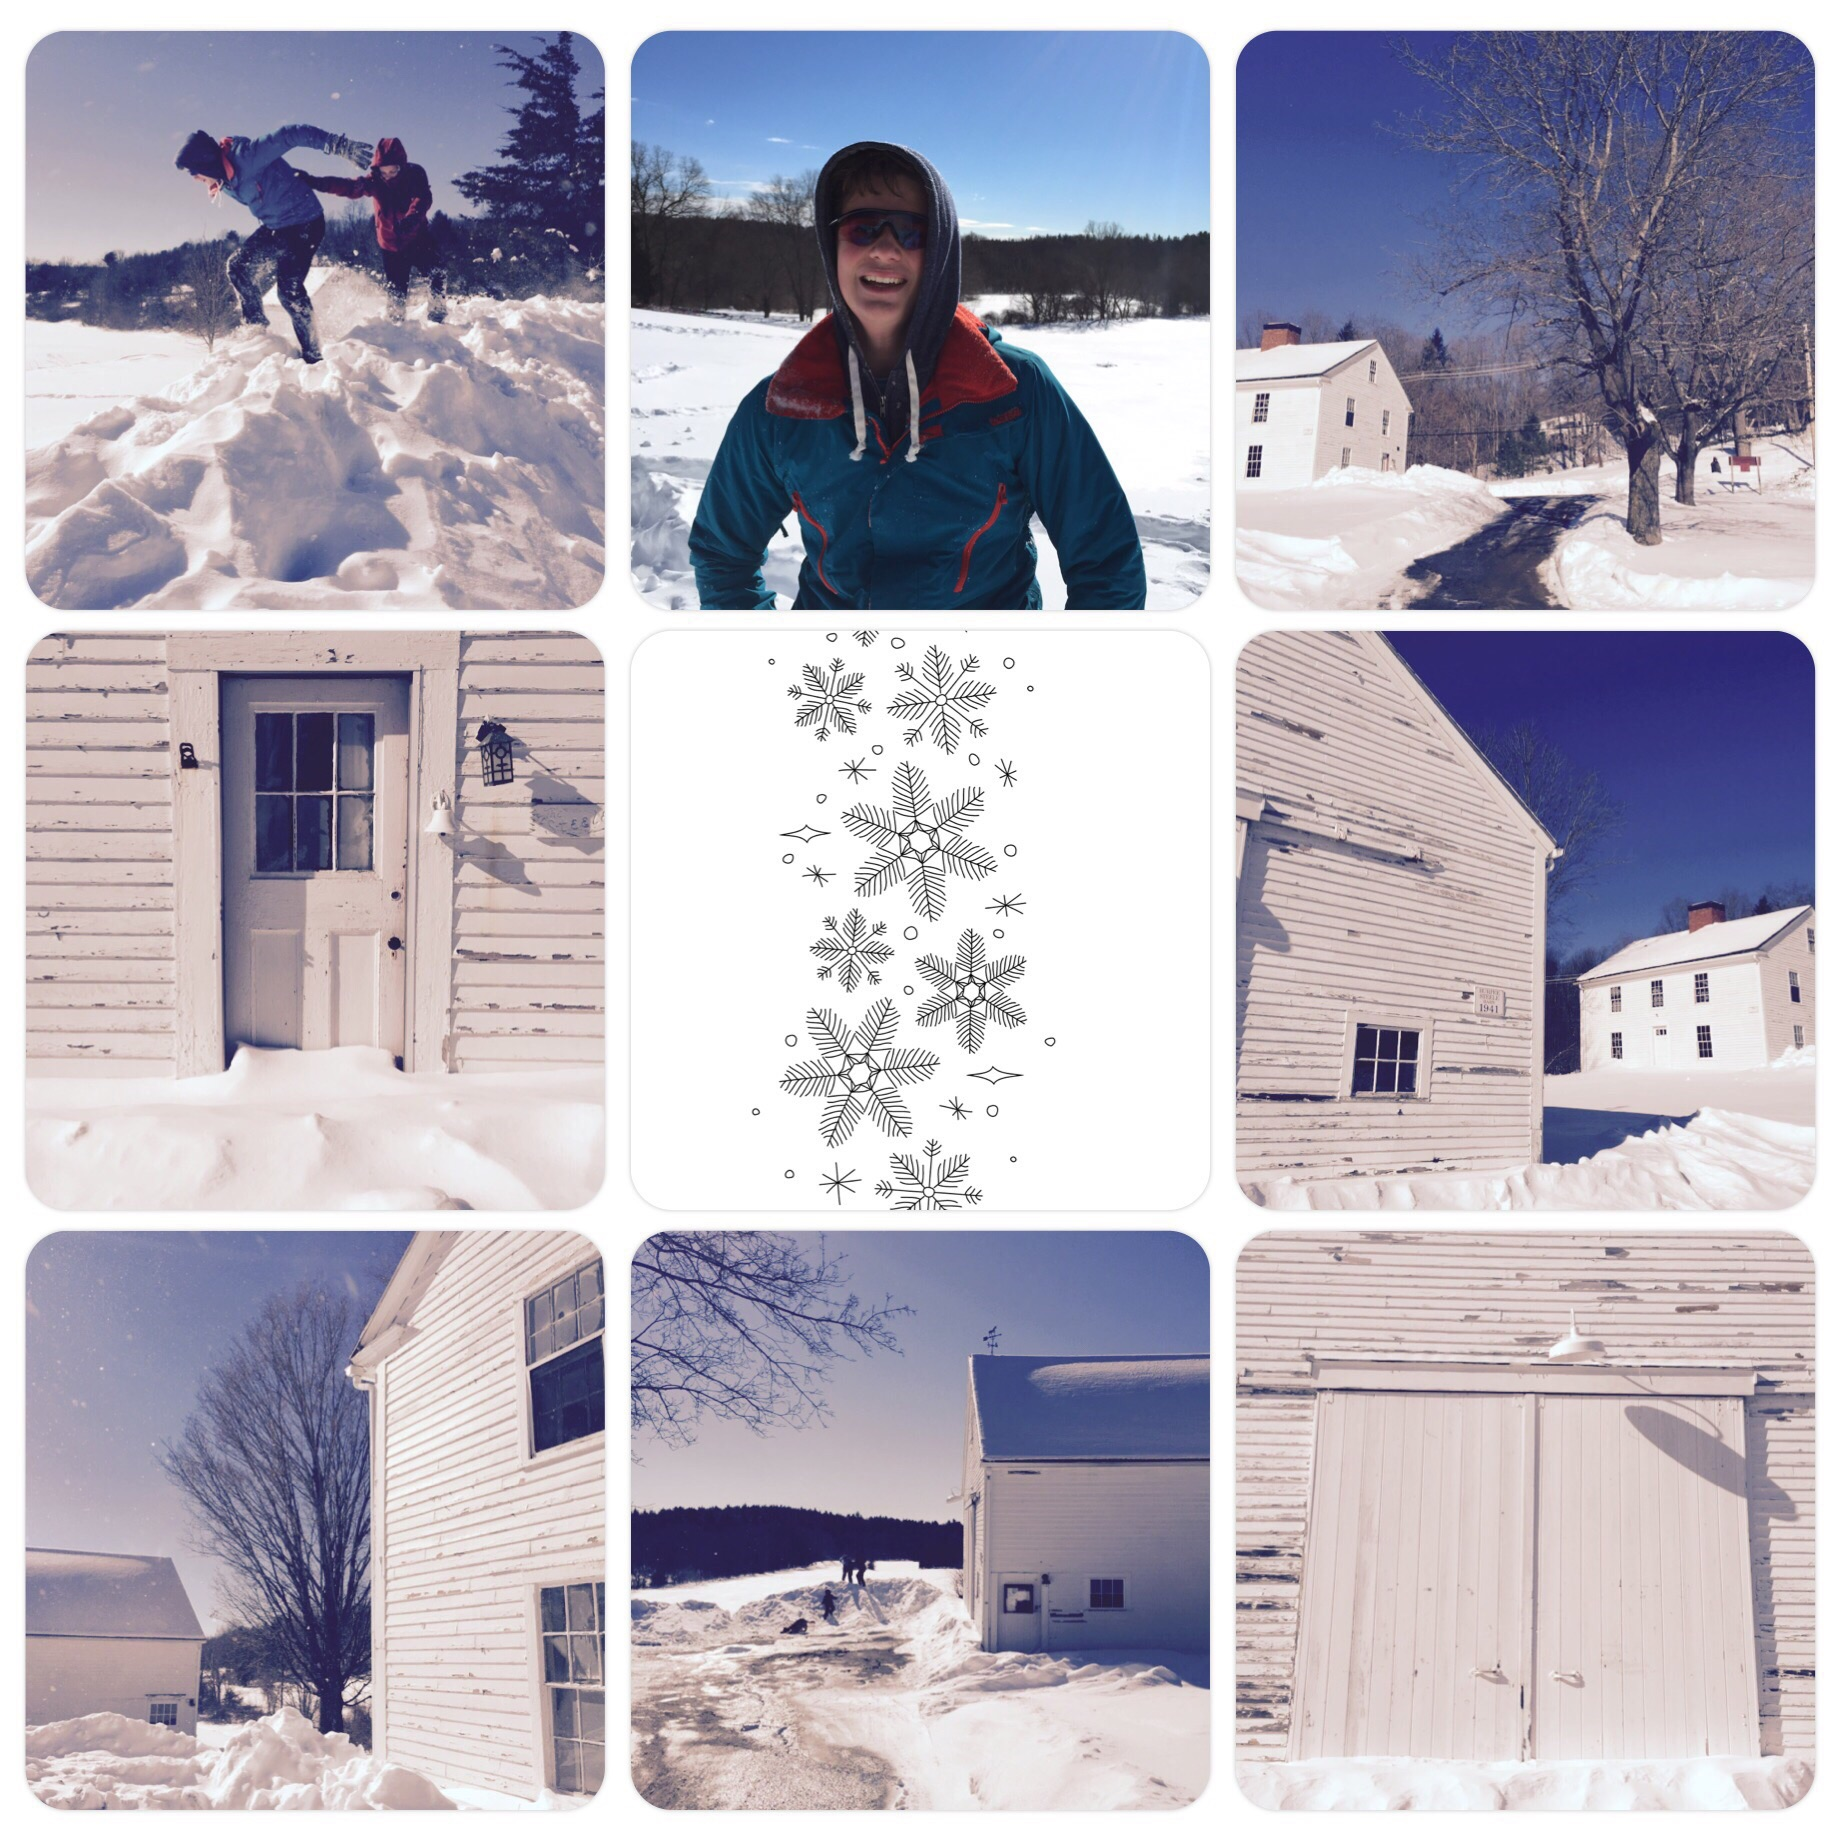 Took the kids and dog to Burpee Steele Barn and surrounding land. The kids played in the snow and Lucy ran but it was way TOO COLD to stay for long.